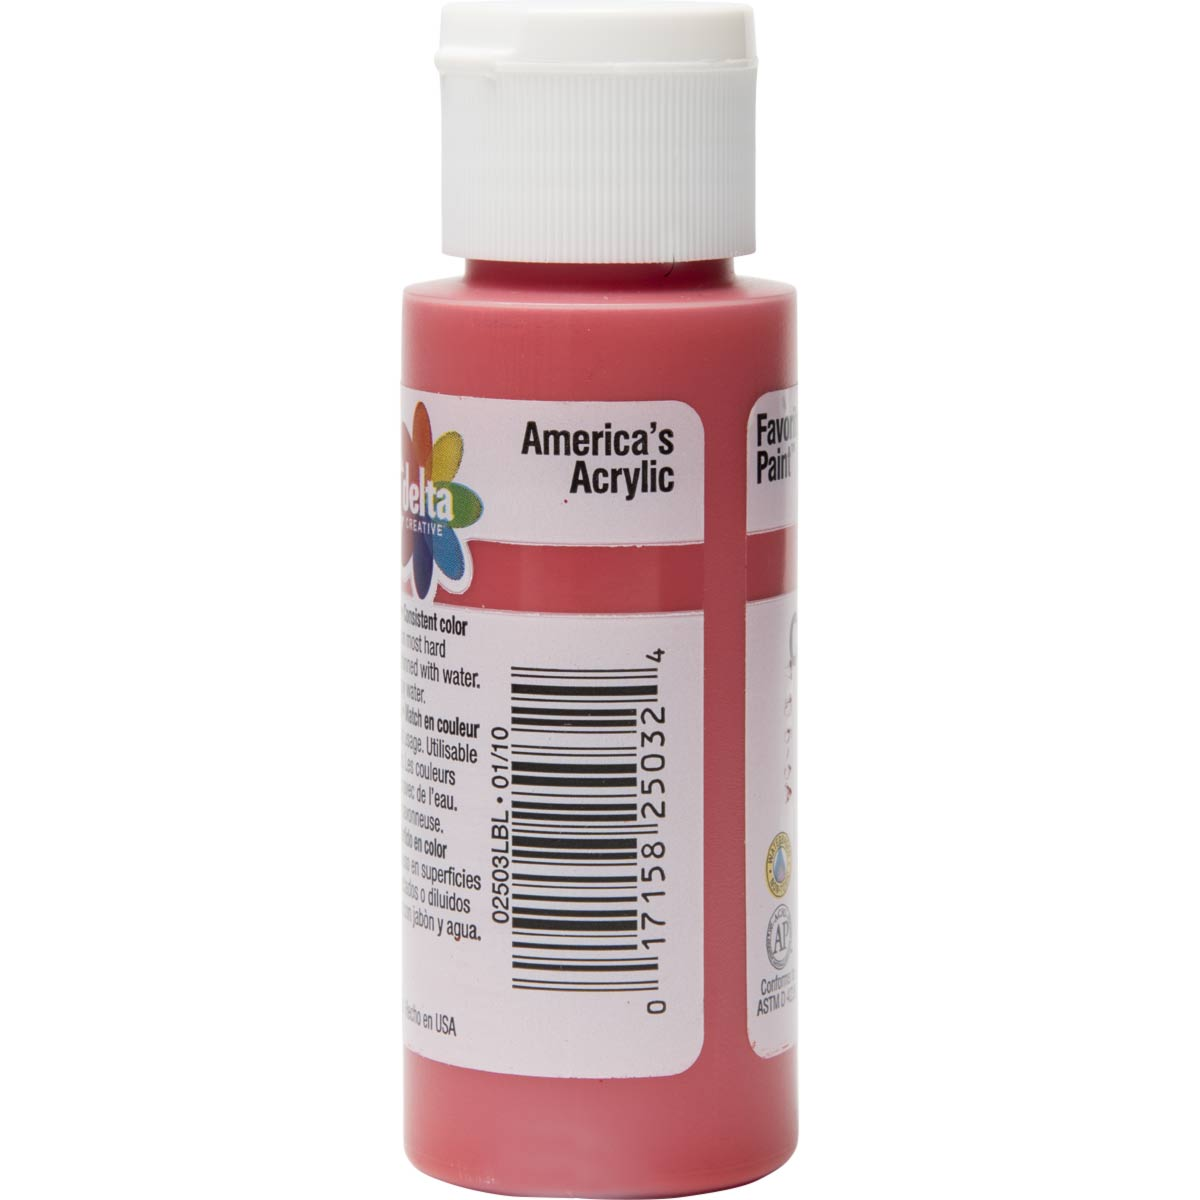 Delta Ceramcoat ® Acrylic Paint - Bright Red, 2 oz. - 025030202W